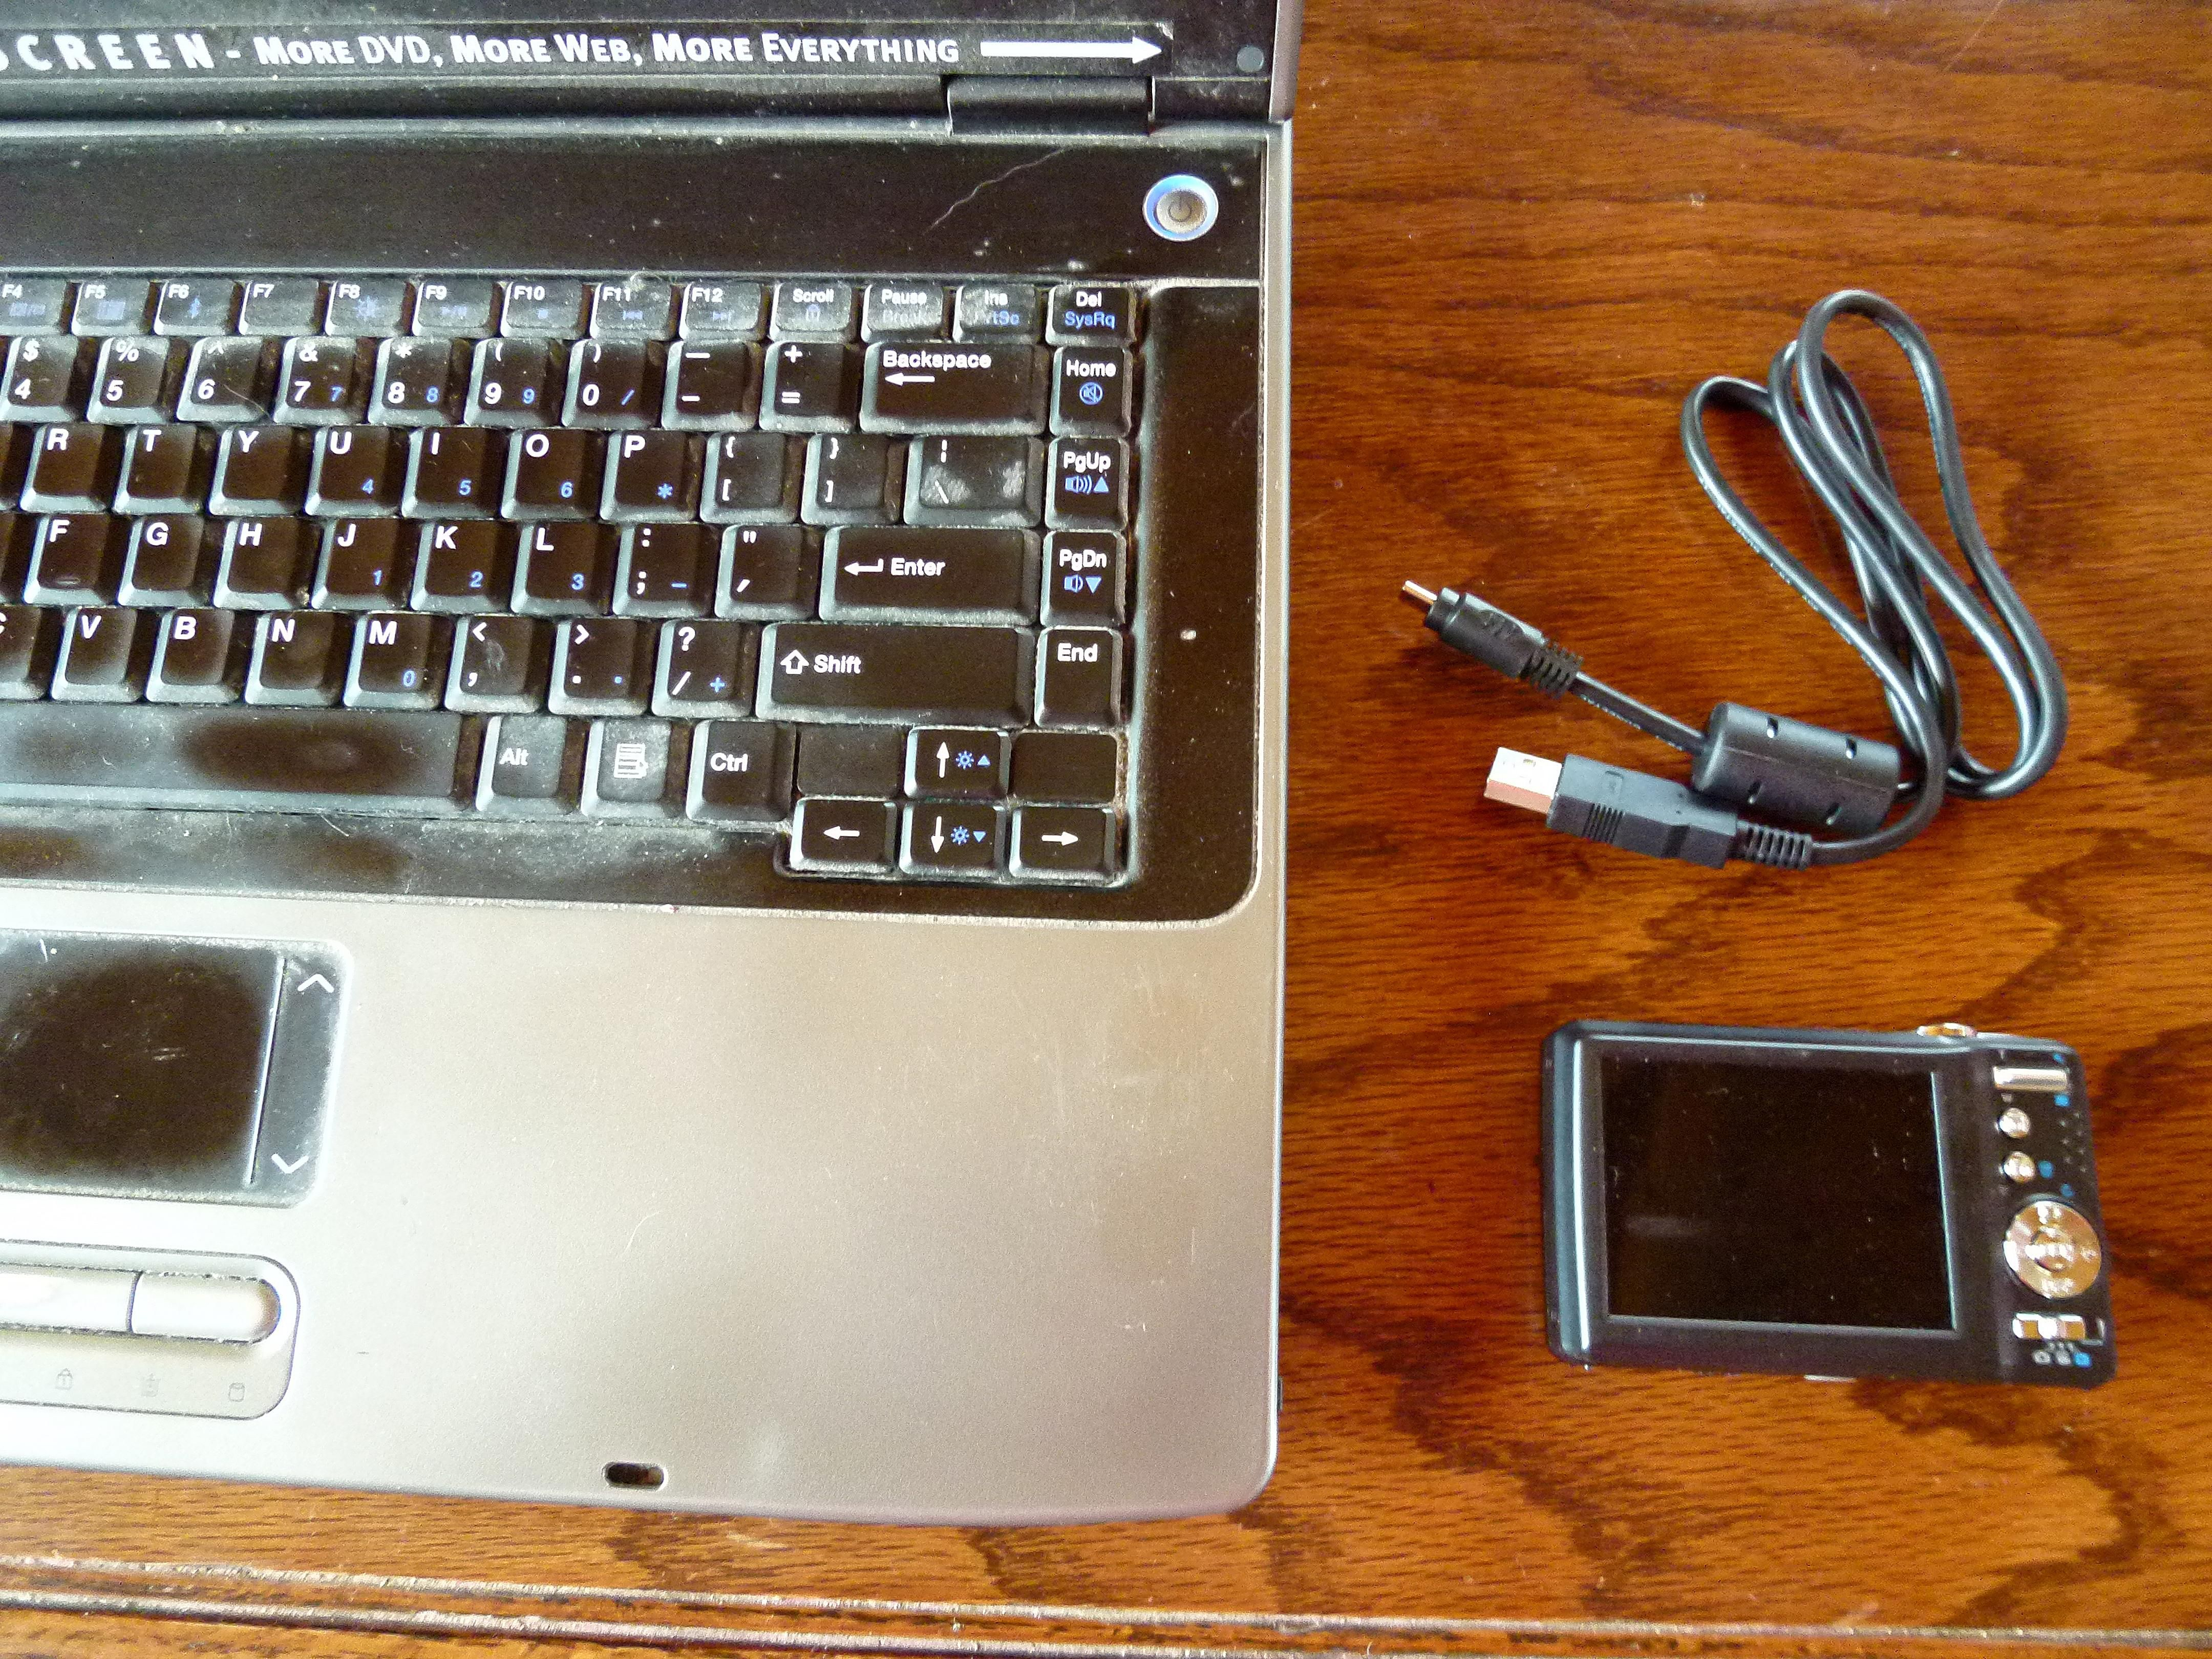 laptop with digital camera and cord next to it